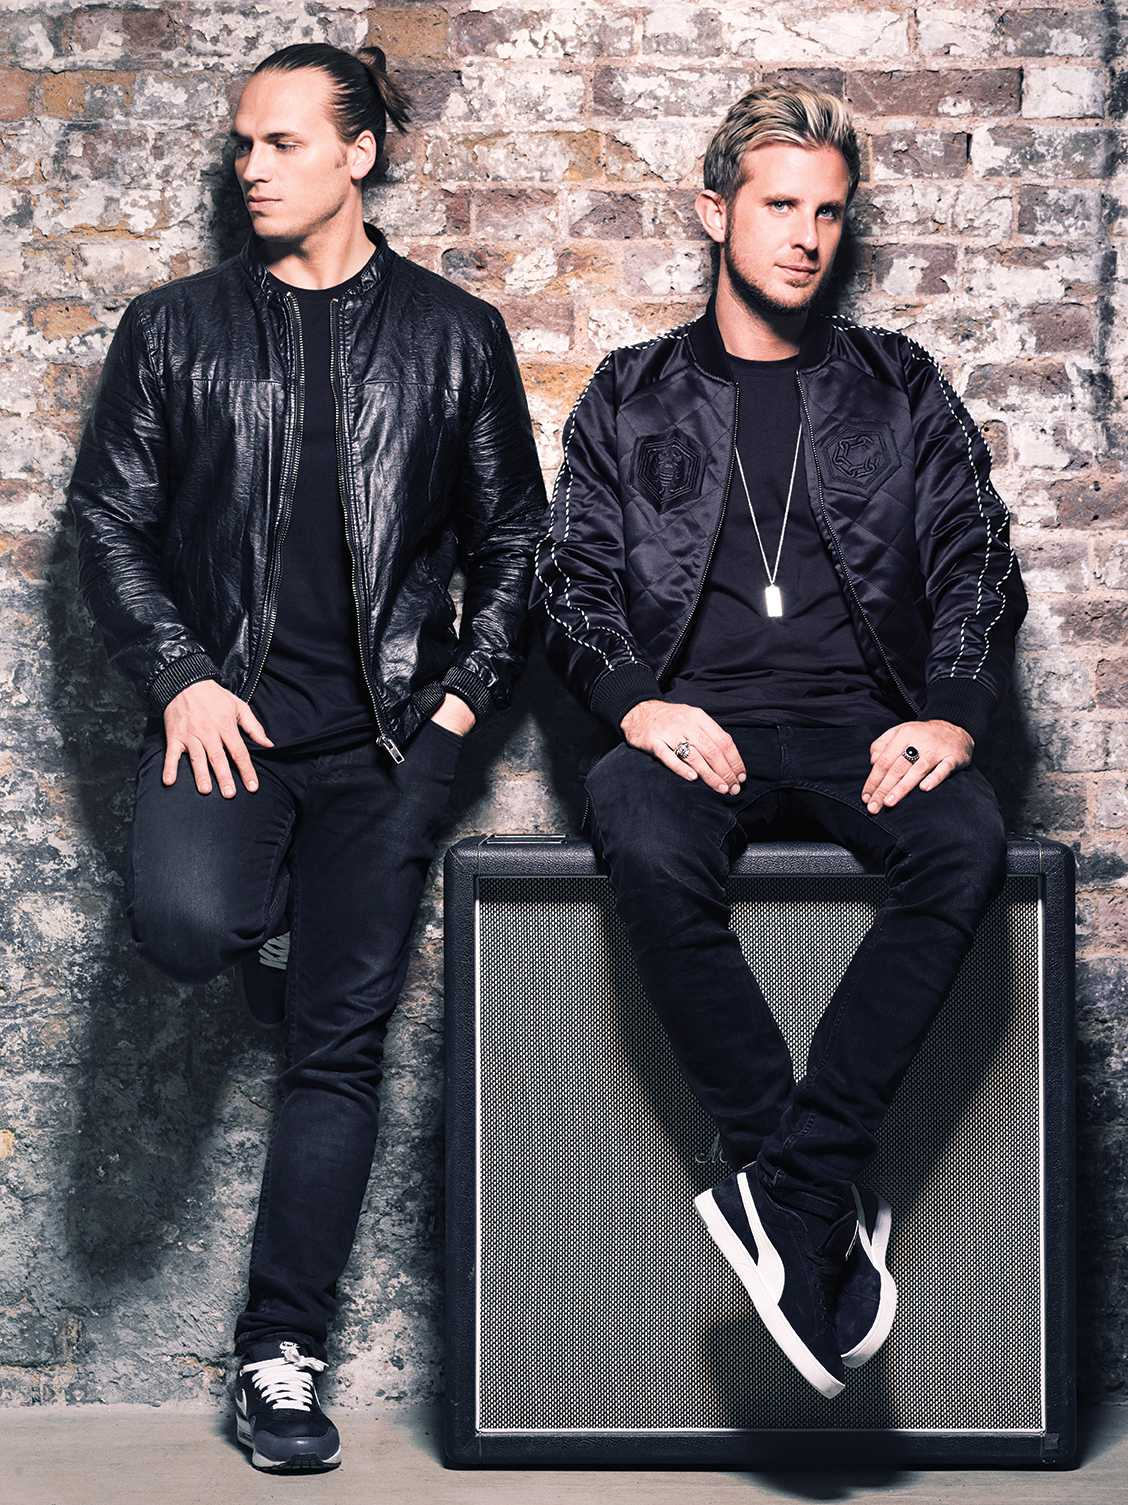 EXCLUSIVE: Sigma On Debut Album 'Life', Their Craft & More | Sigma